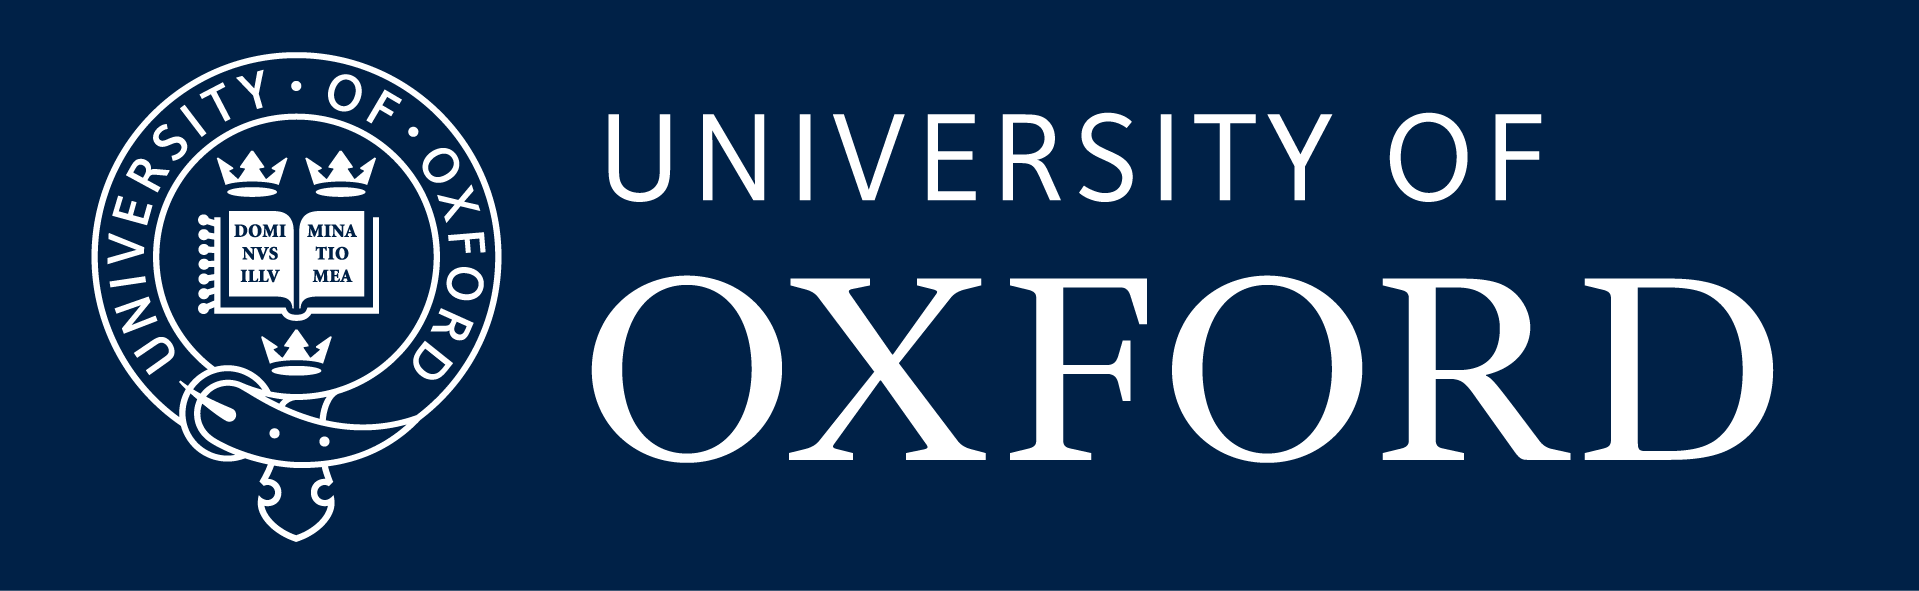 logo UNIVERSITY OF OXFORD | Inspirasi, Perjalanan